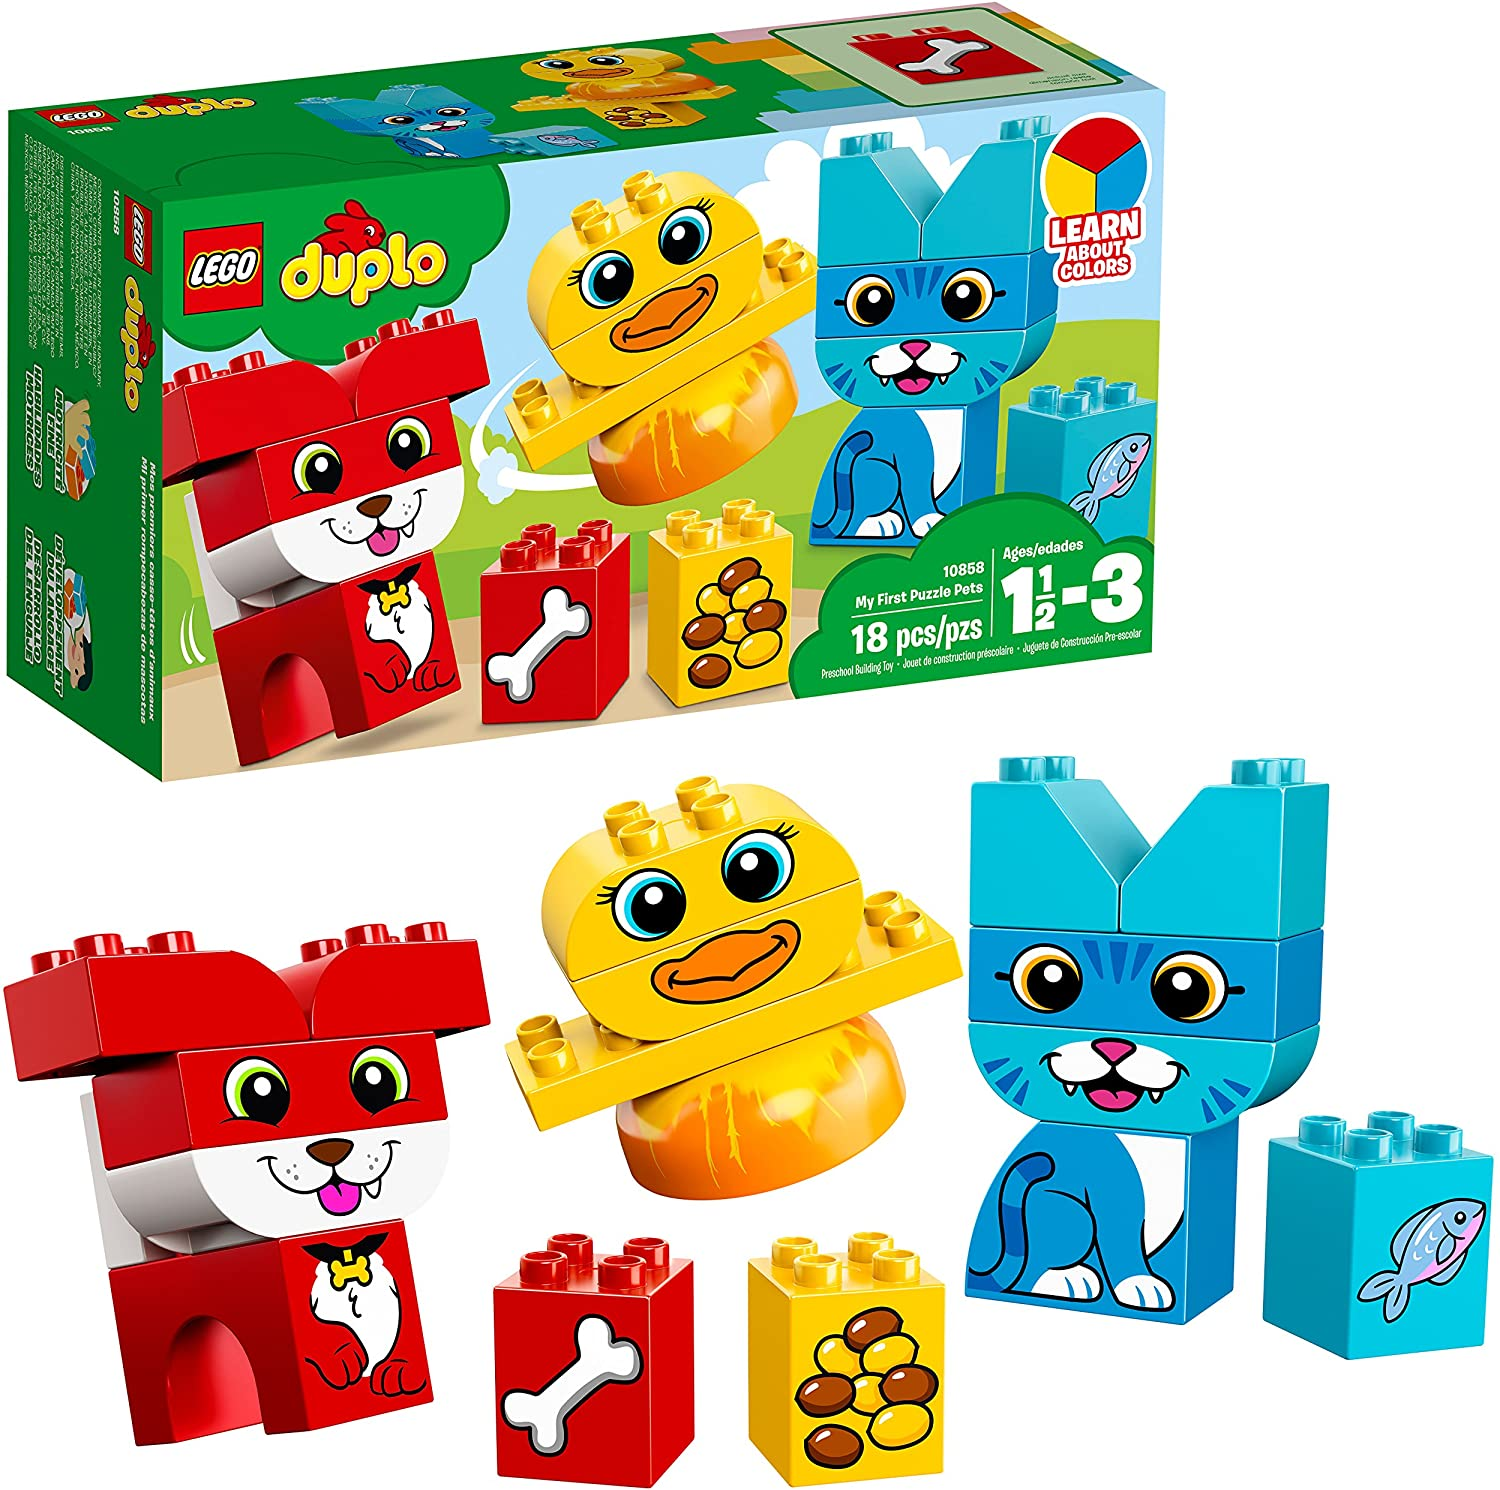 LEGO DUPLO My First Puzzle Pets 10858 Building Blocks (18 Pieces)